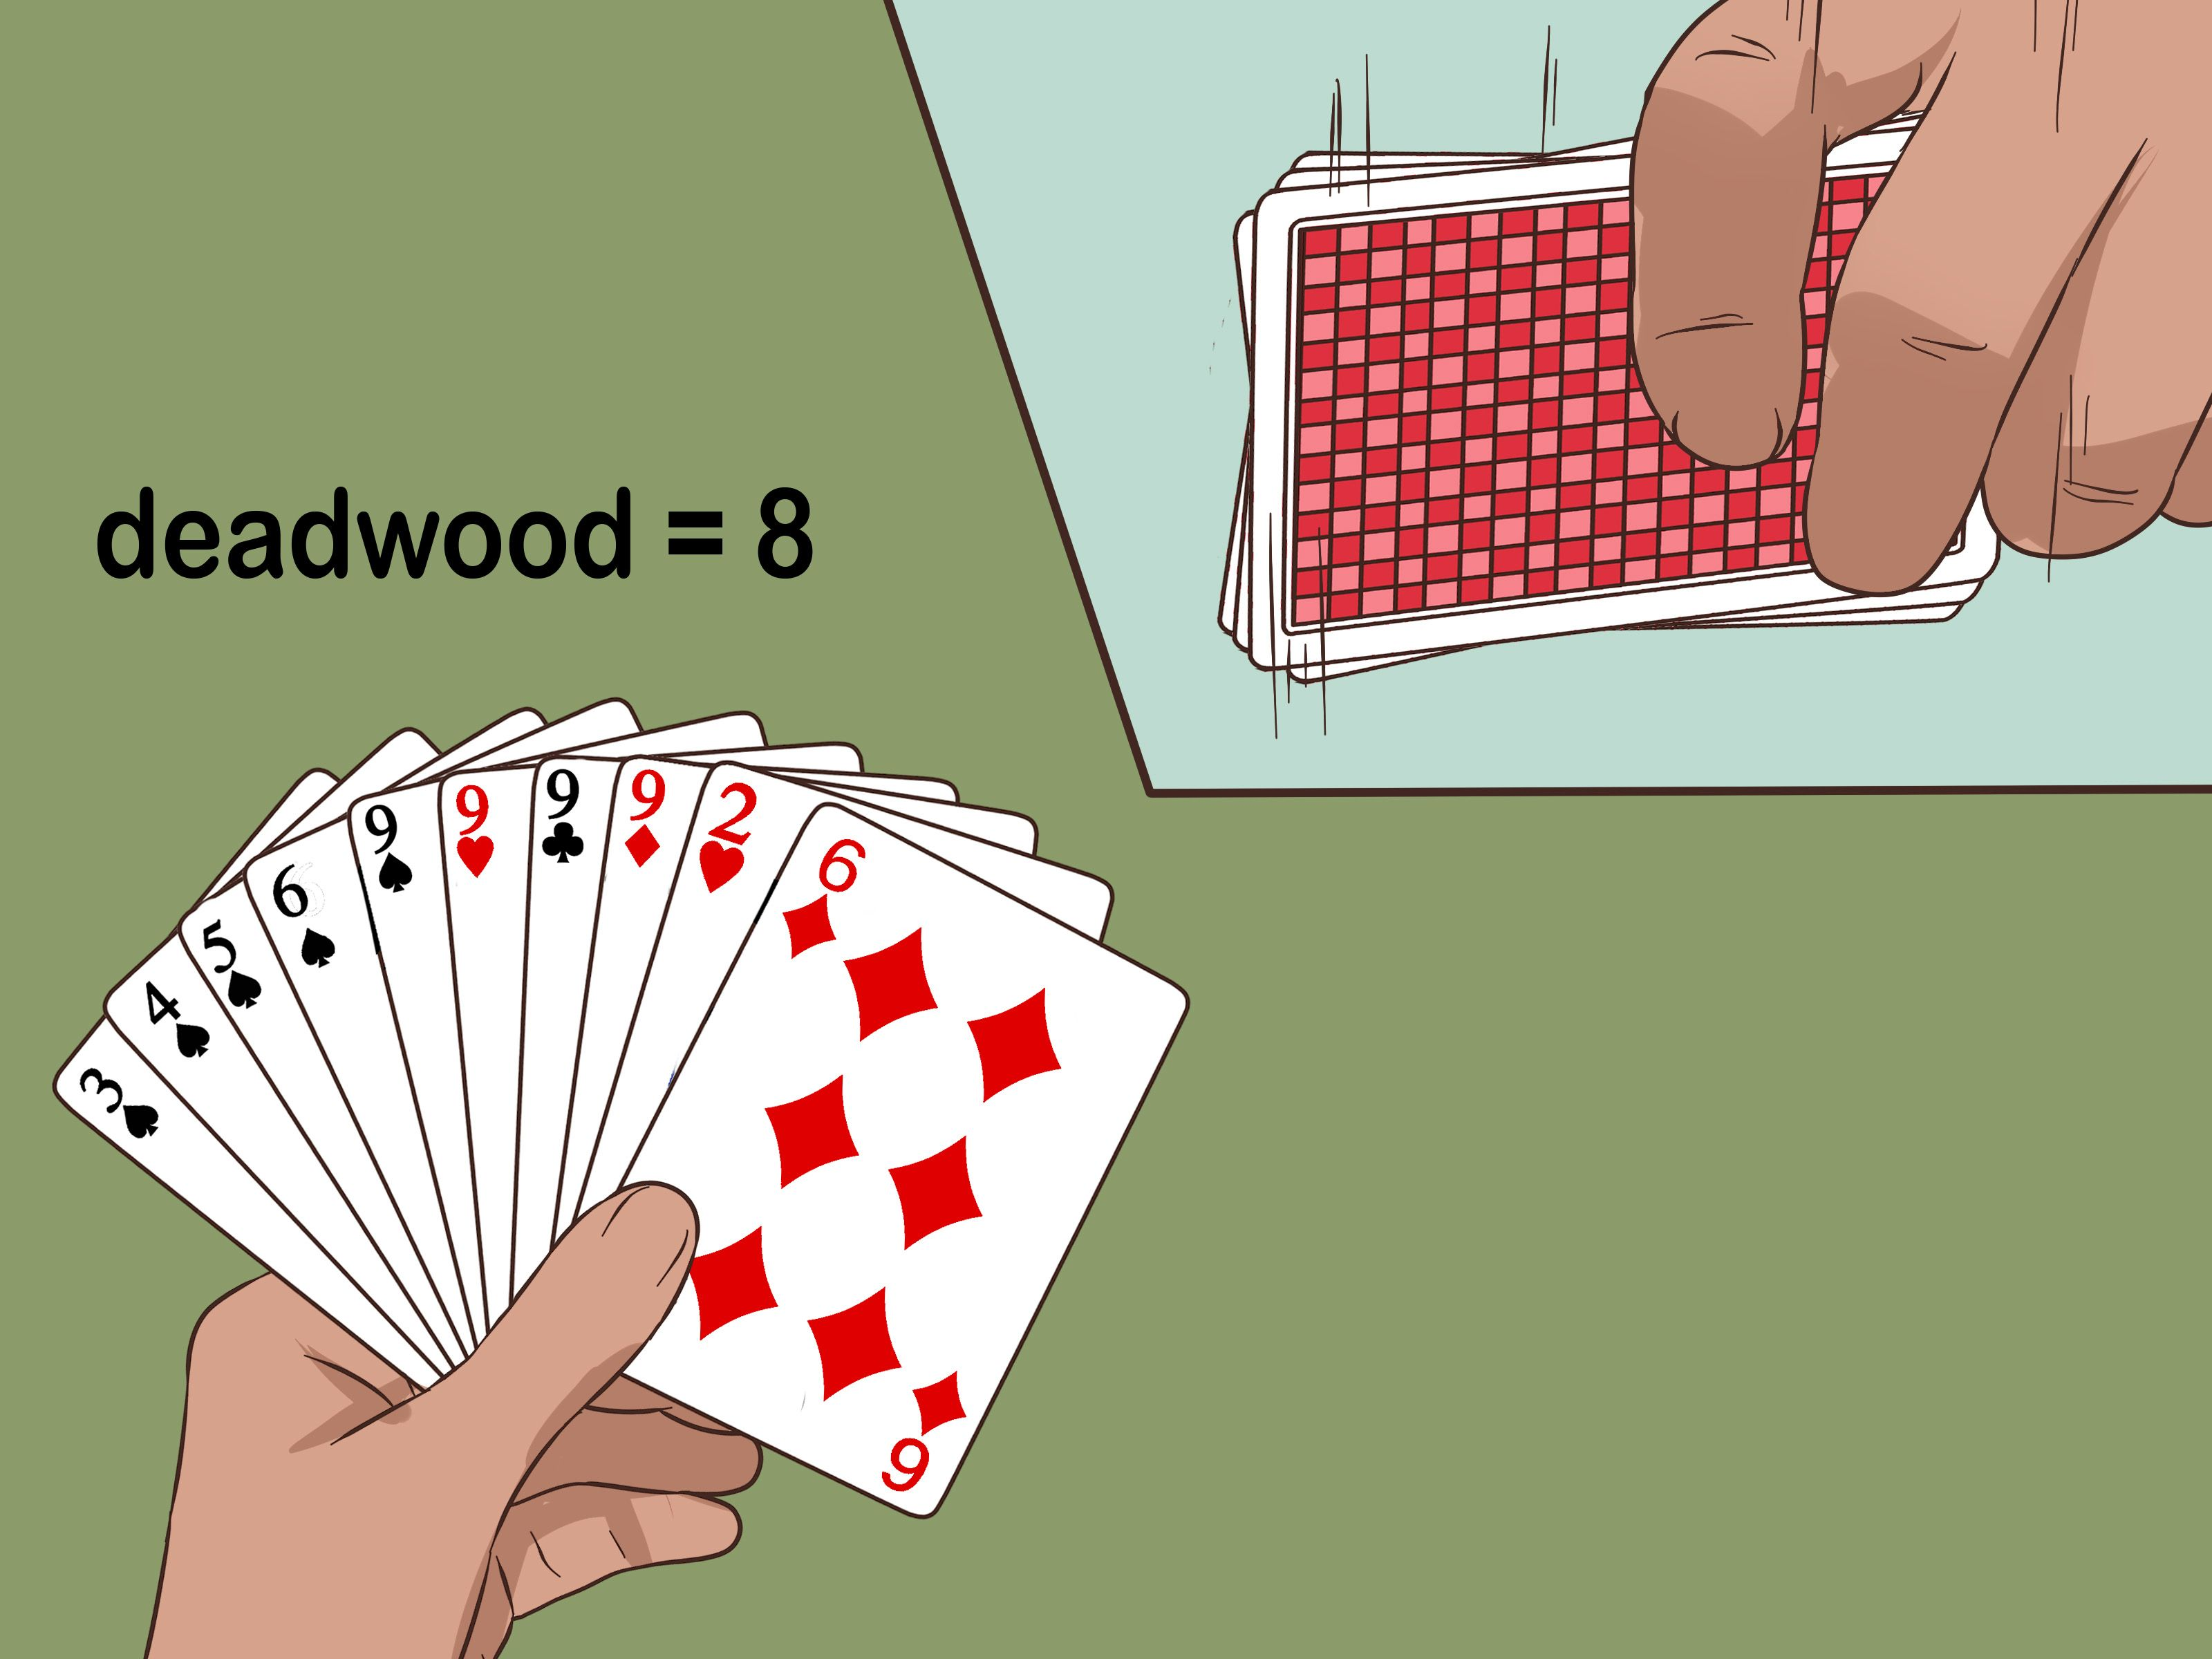 How To Play Gin Rummy Gin Rummy Is A Two Person Card Game In Which You Try To Get All Of Your Cards Into Matching Sets Or Ru Gin Rummy Rummy How